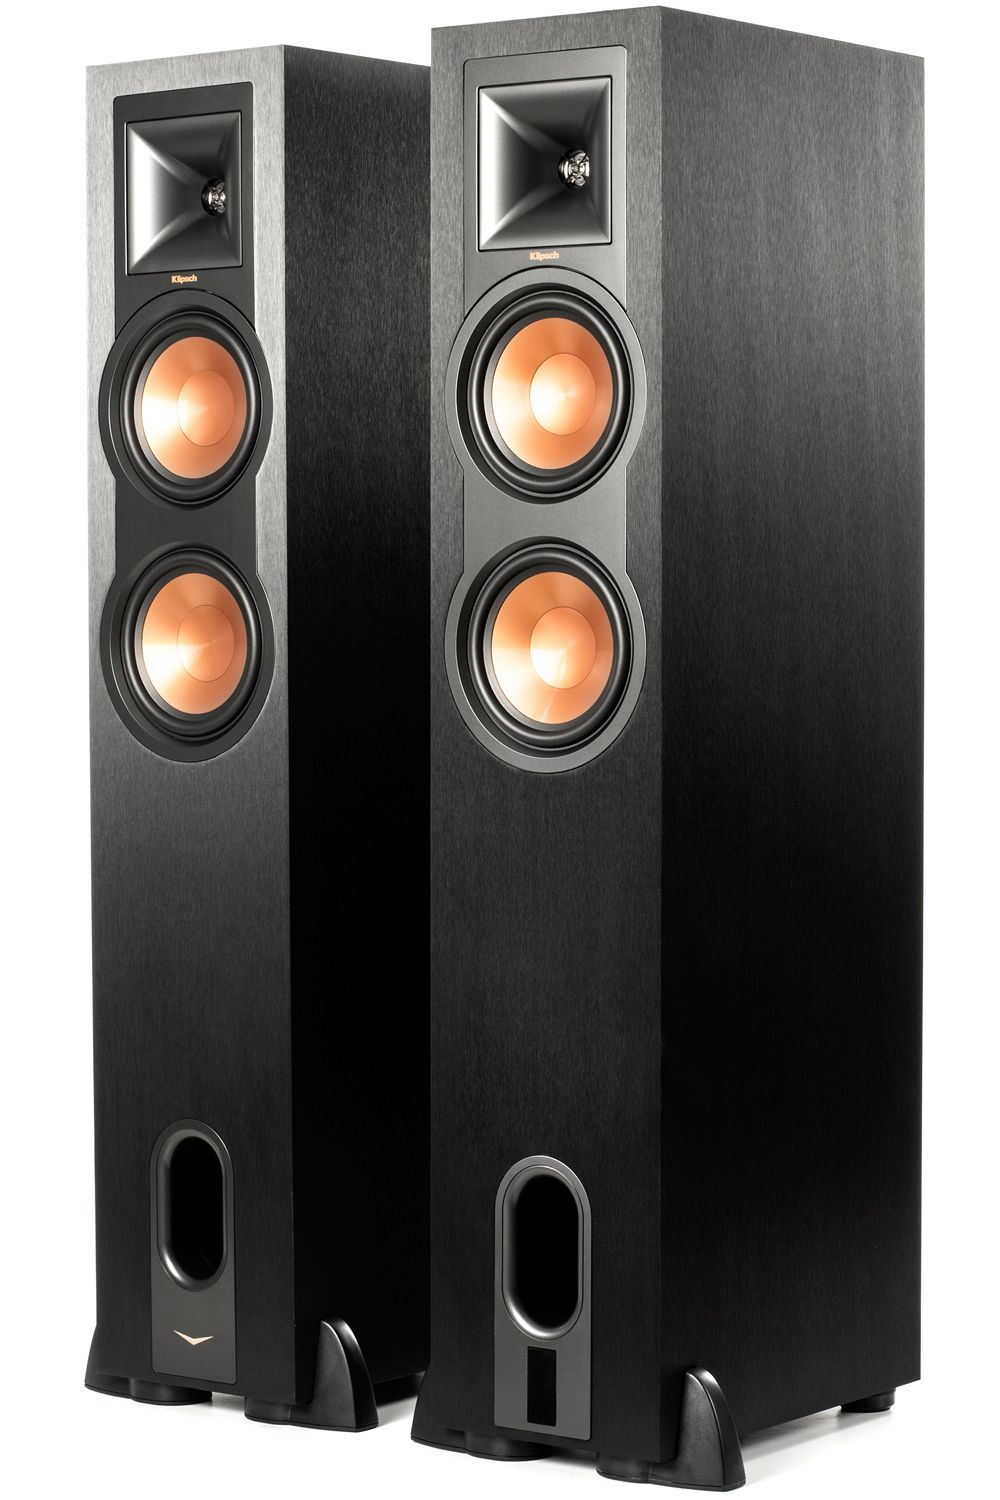 pictures klipsch dragon reviews inspirations ebay best richter floors speakers floor singular bluetooth standing vintage tower cnet size infinityanding full of new huge with